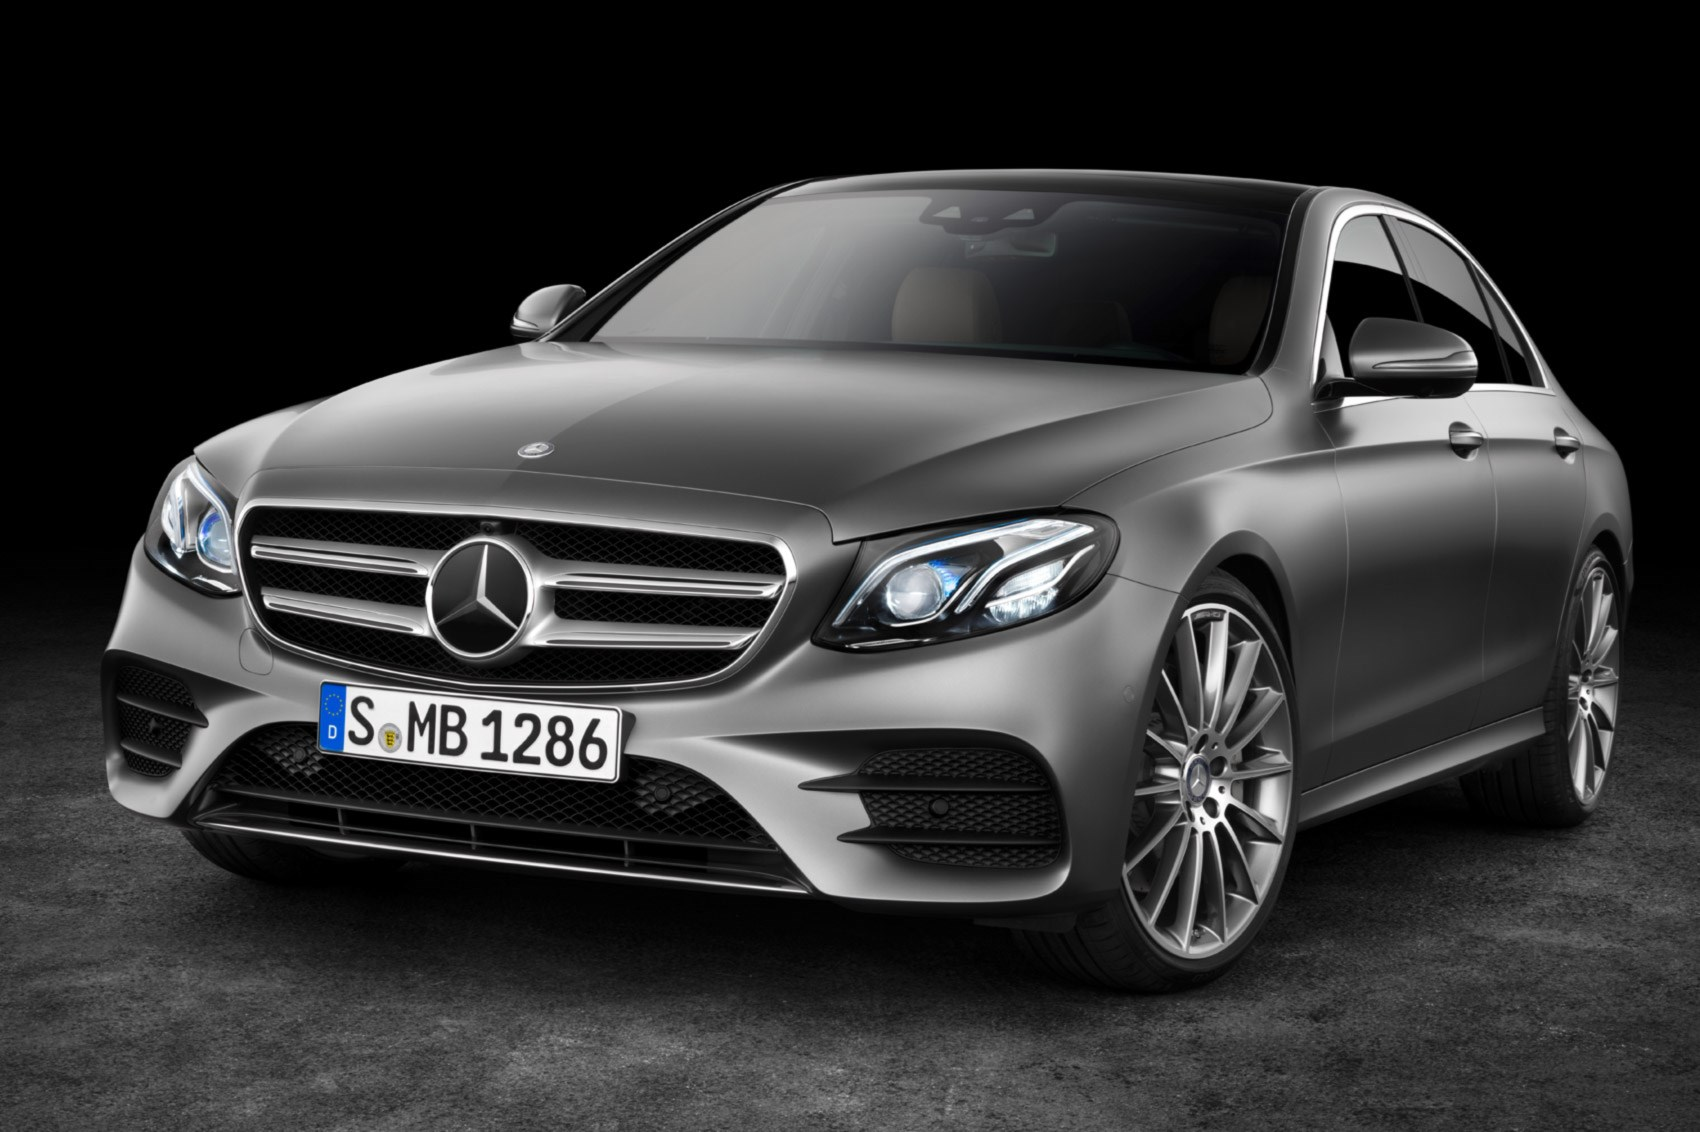 new mercedes benz e class unveiled at 2016 detroit motor show car magazine. Black Bedroom Furniture Sets. Home Design Ideas